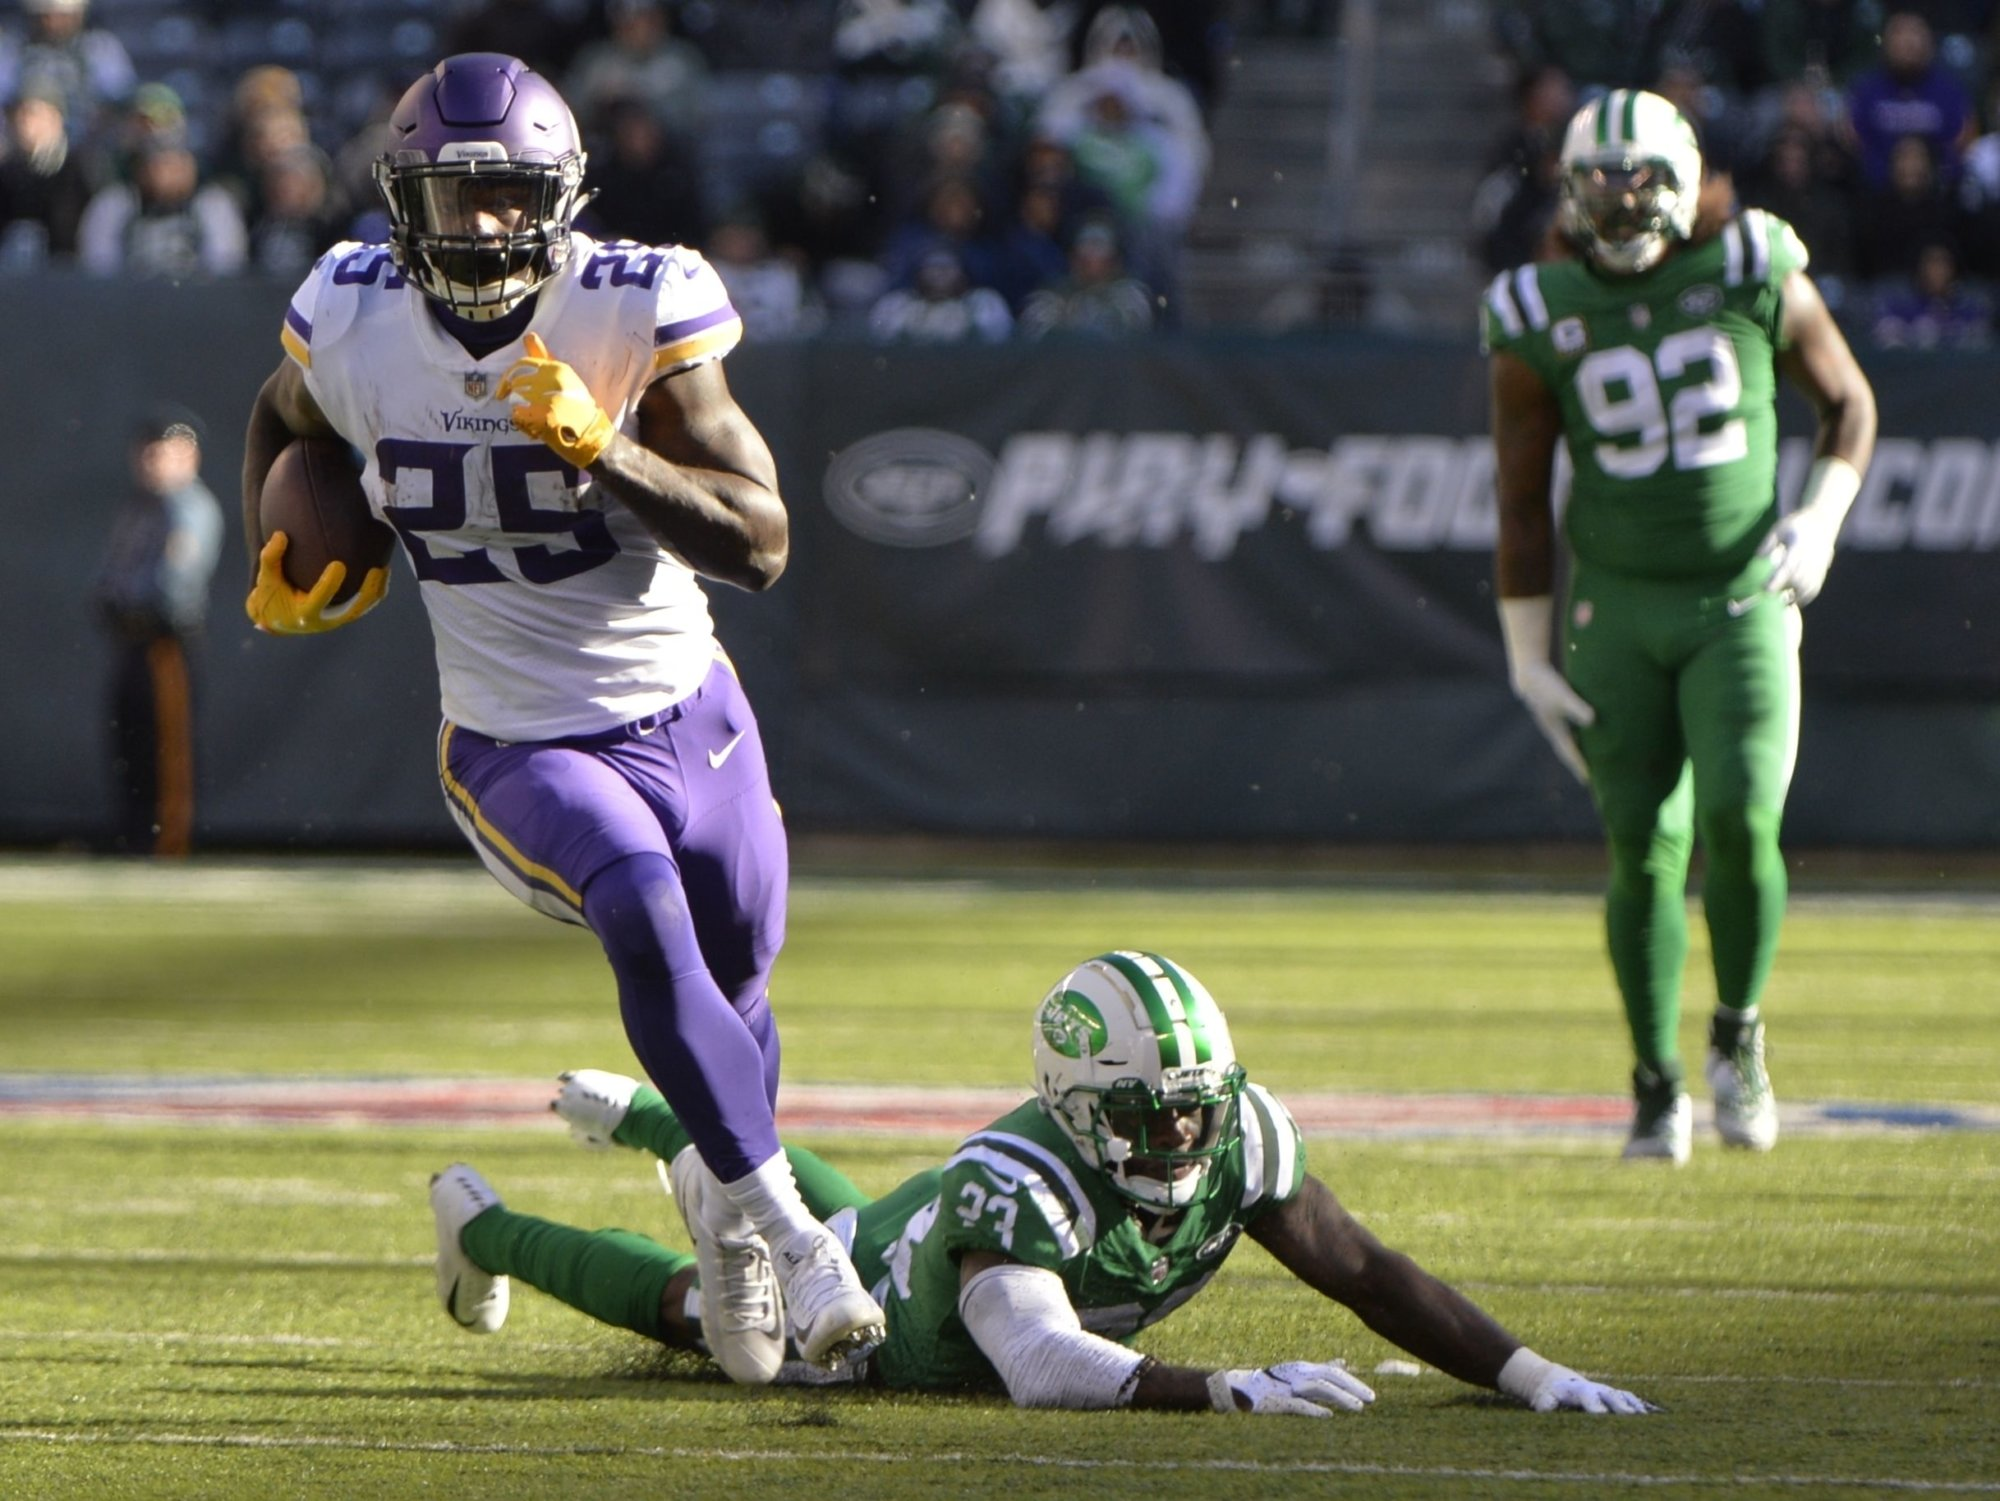 Minnesota Vikings running back Latavius Murray (25) runs away from New York Jets' Jamal Adams (33) and Tarell Basham (93) for a touchdown during the second half of an NFL football game Sunday, Oct. 21, 2018, in East Rutherford, N.J. (AP Photo/Howard Simmons)